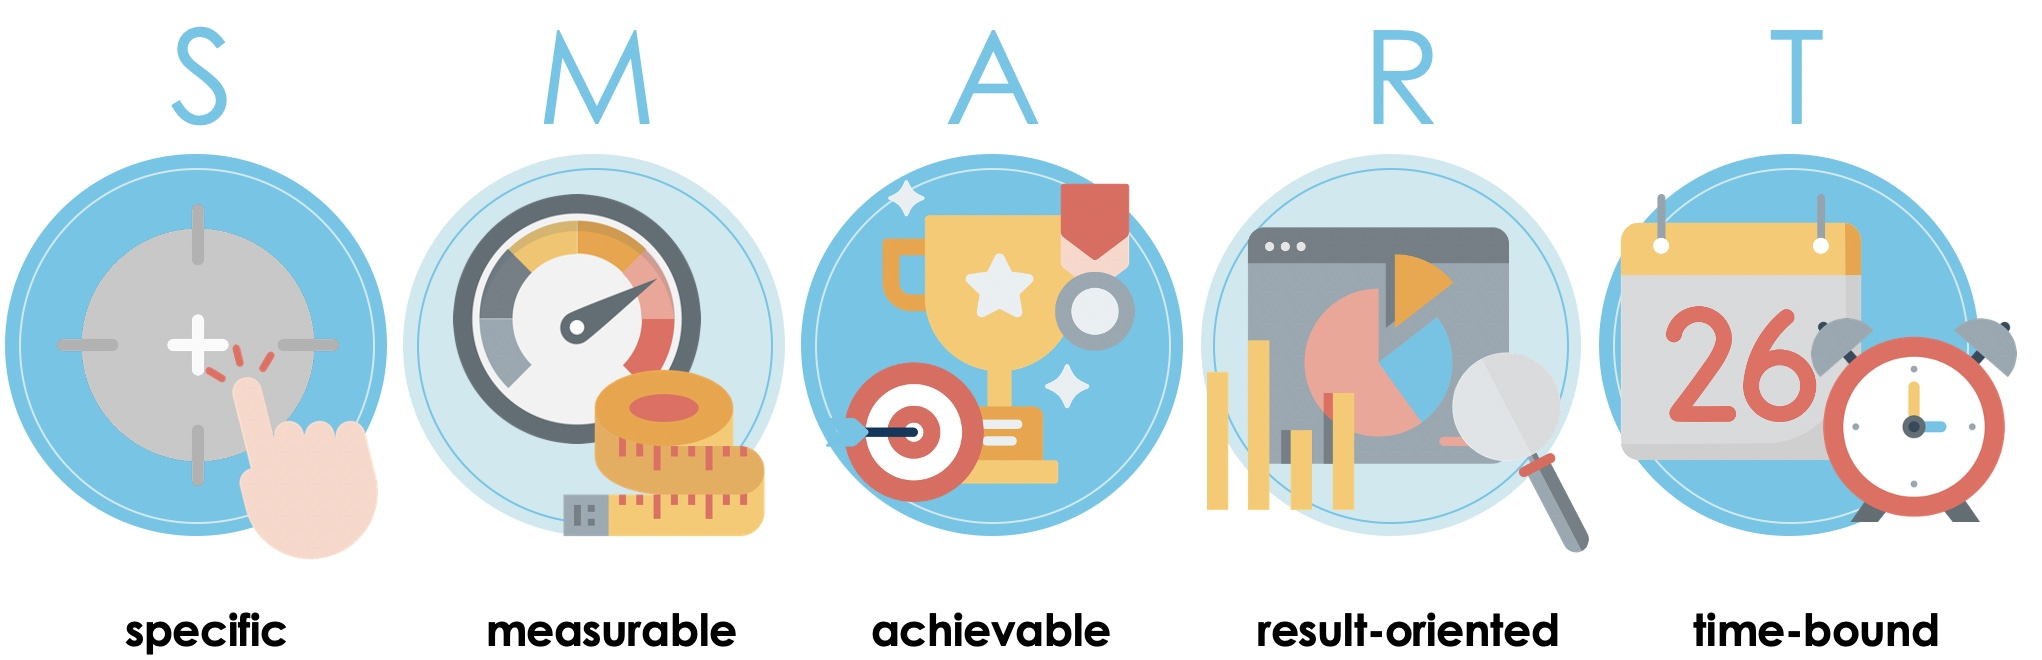 Developing the SMART objectives - There are five different areas that are important for this: 1. specific: concrete and specific objectives 2. measurable: measurable target values 3. achievable: achievable goals 4. result-oriented: realizable goals 5. time-bound: scheduled goal setting